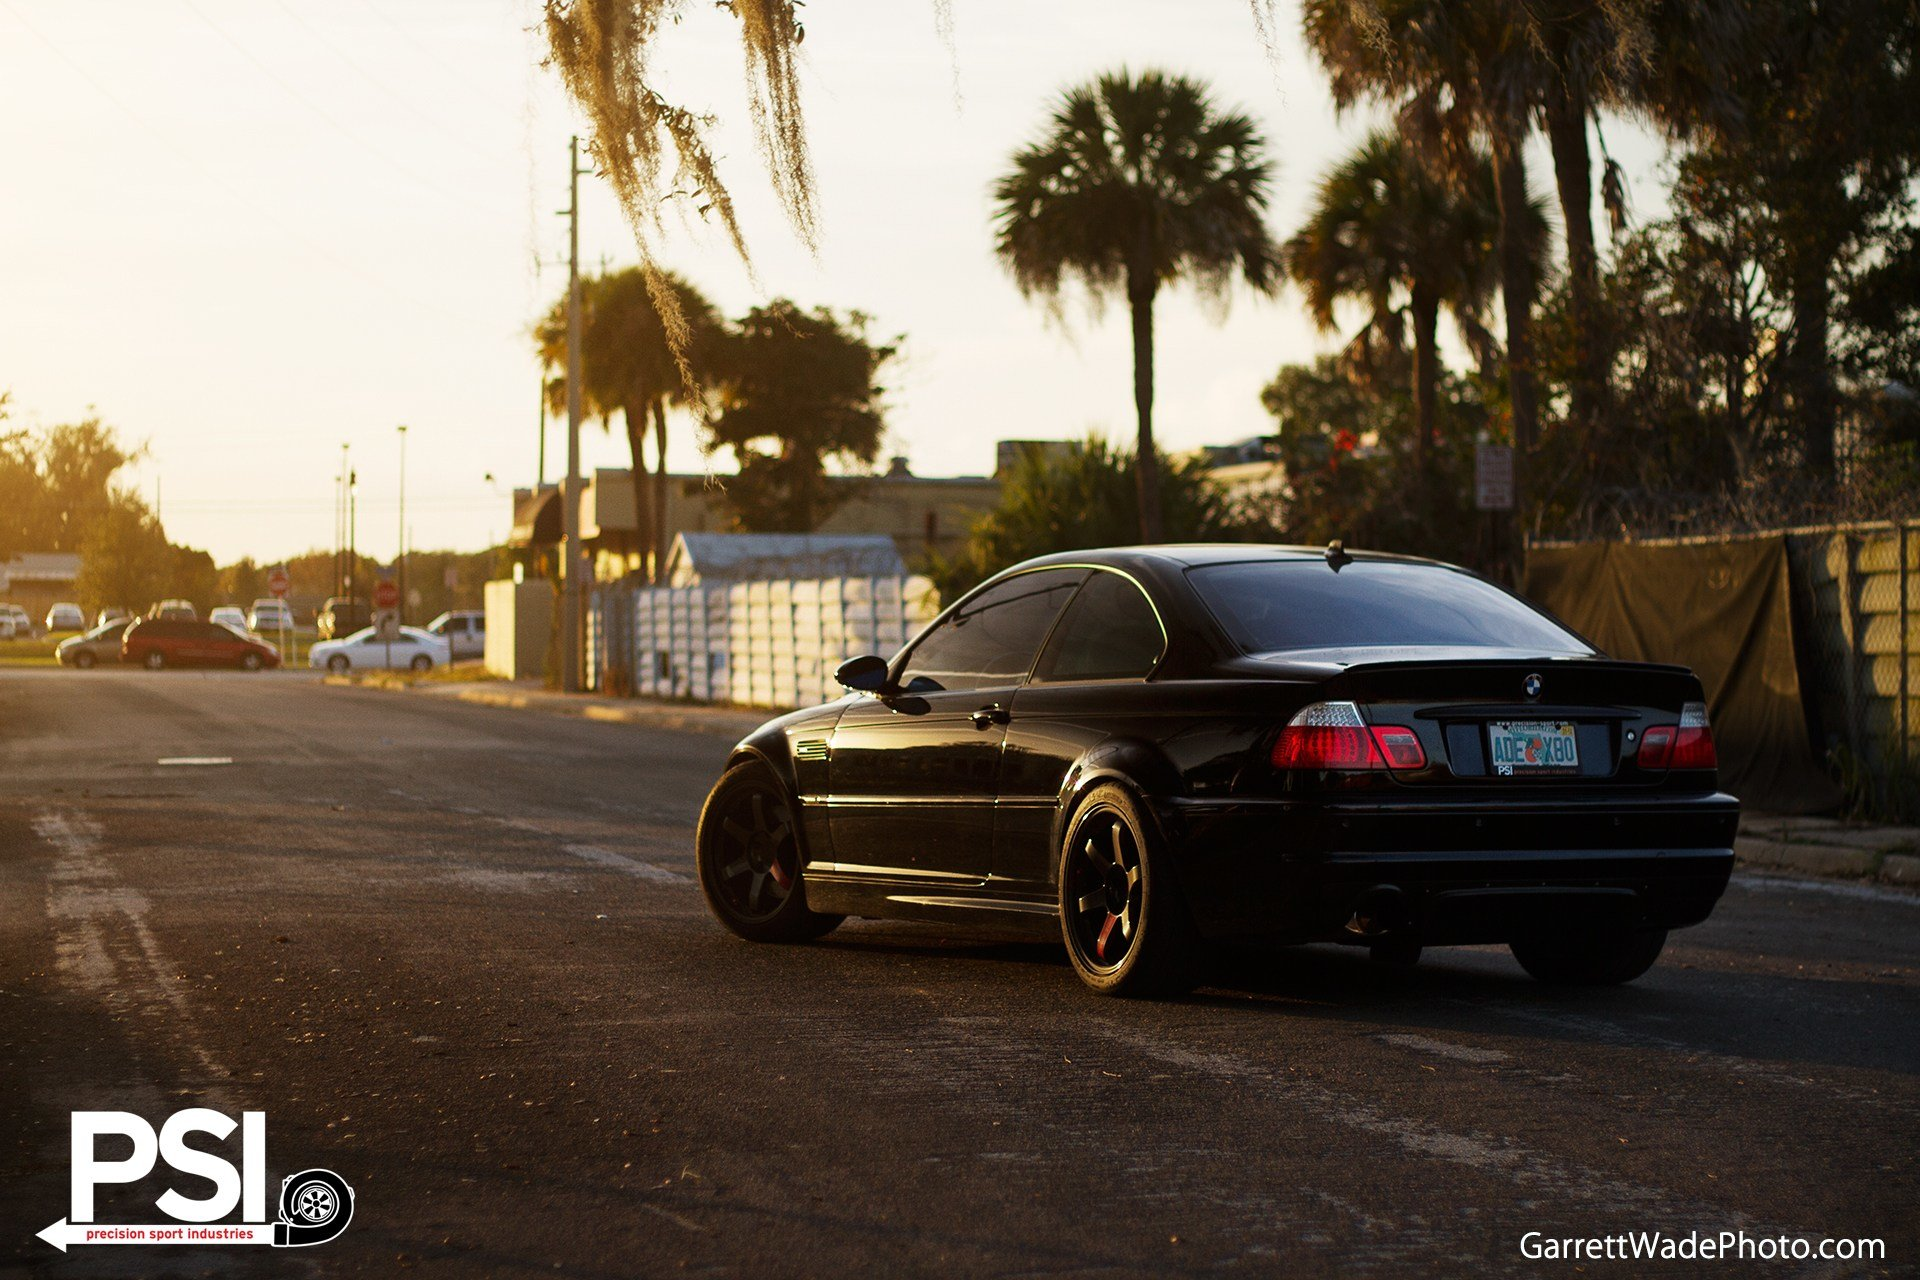 Latest Black On Black Bmw E46 M3 From Psi Has 520 Hp Autoevolution Free Download